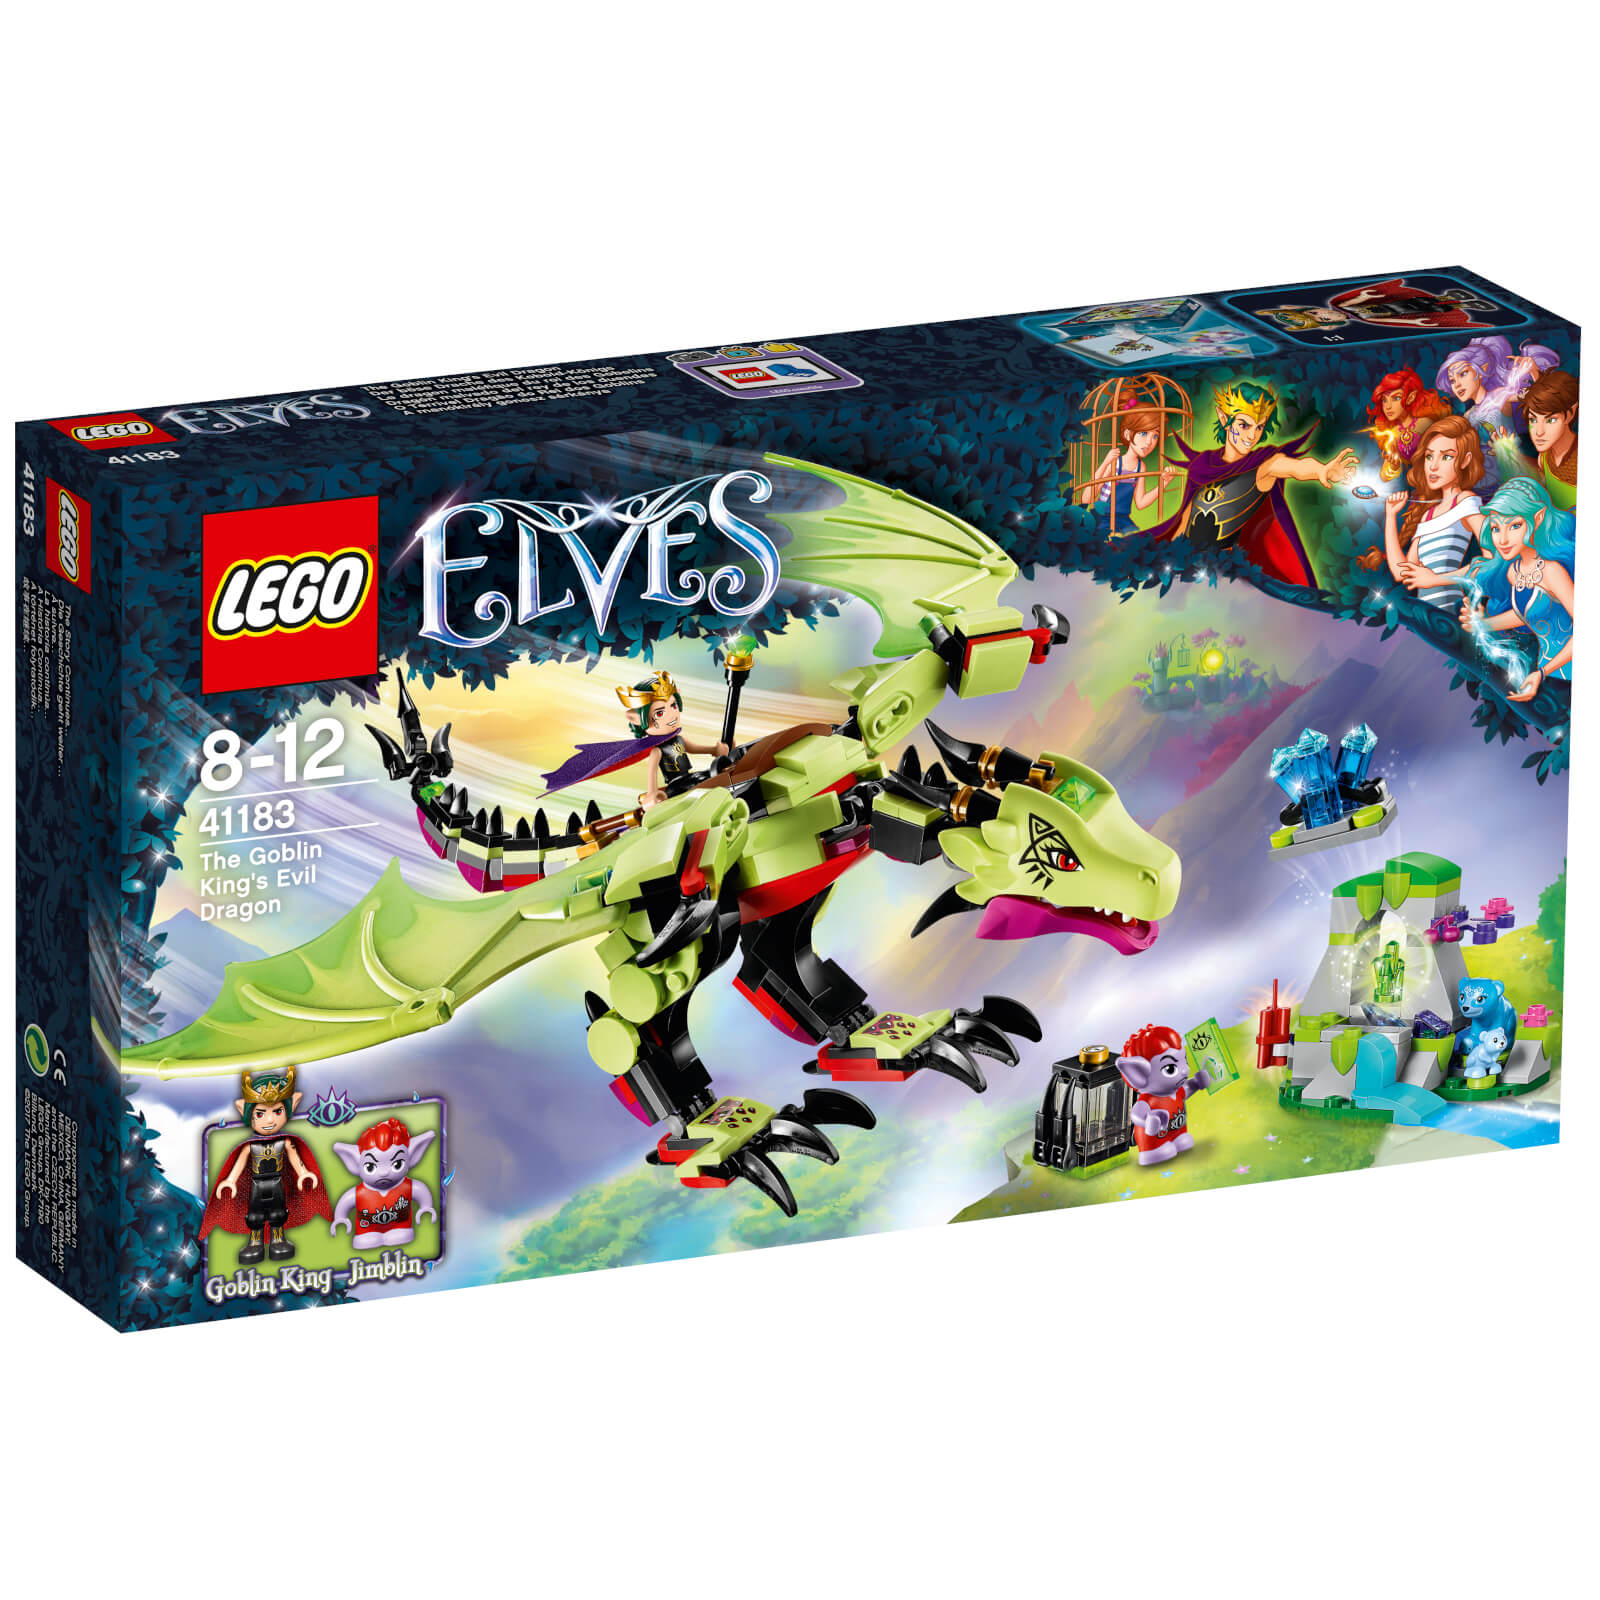 LEGO Elves: The Goblin King